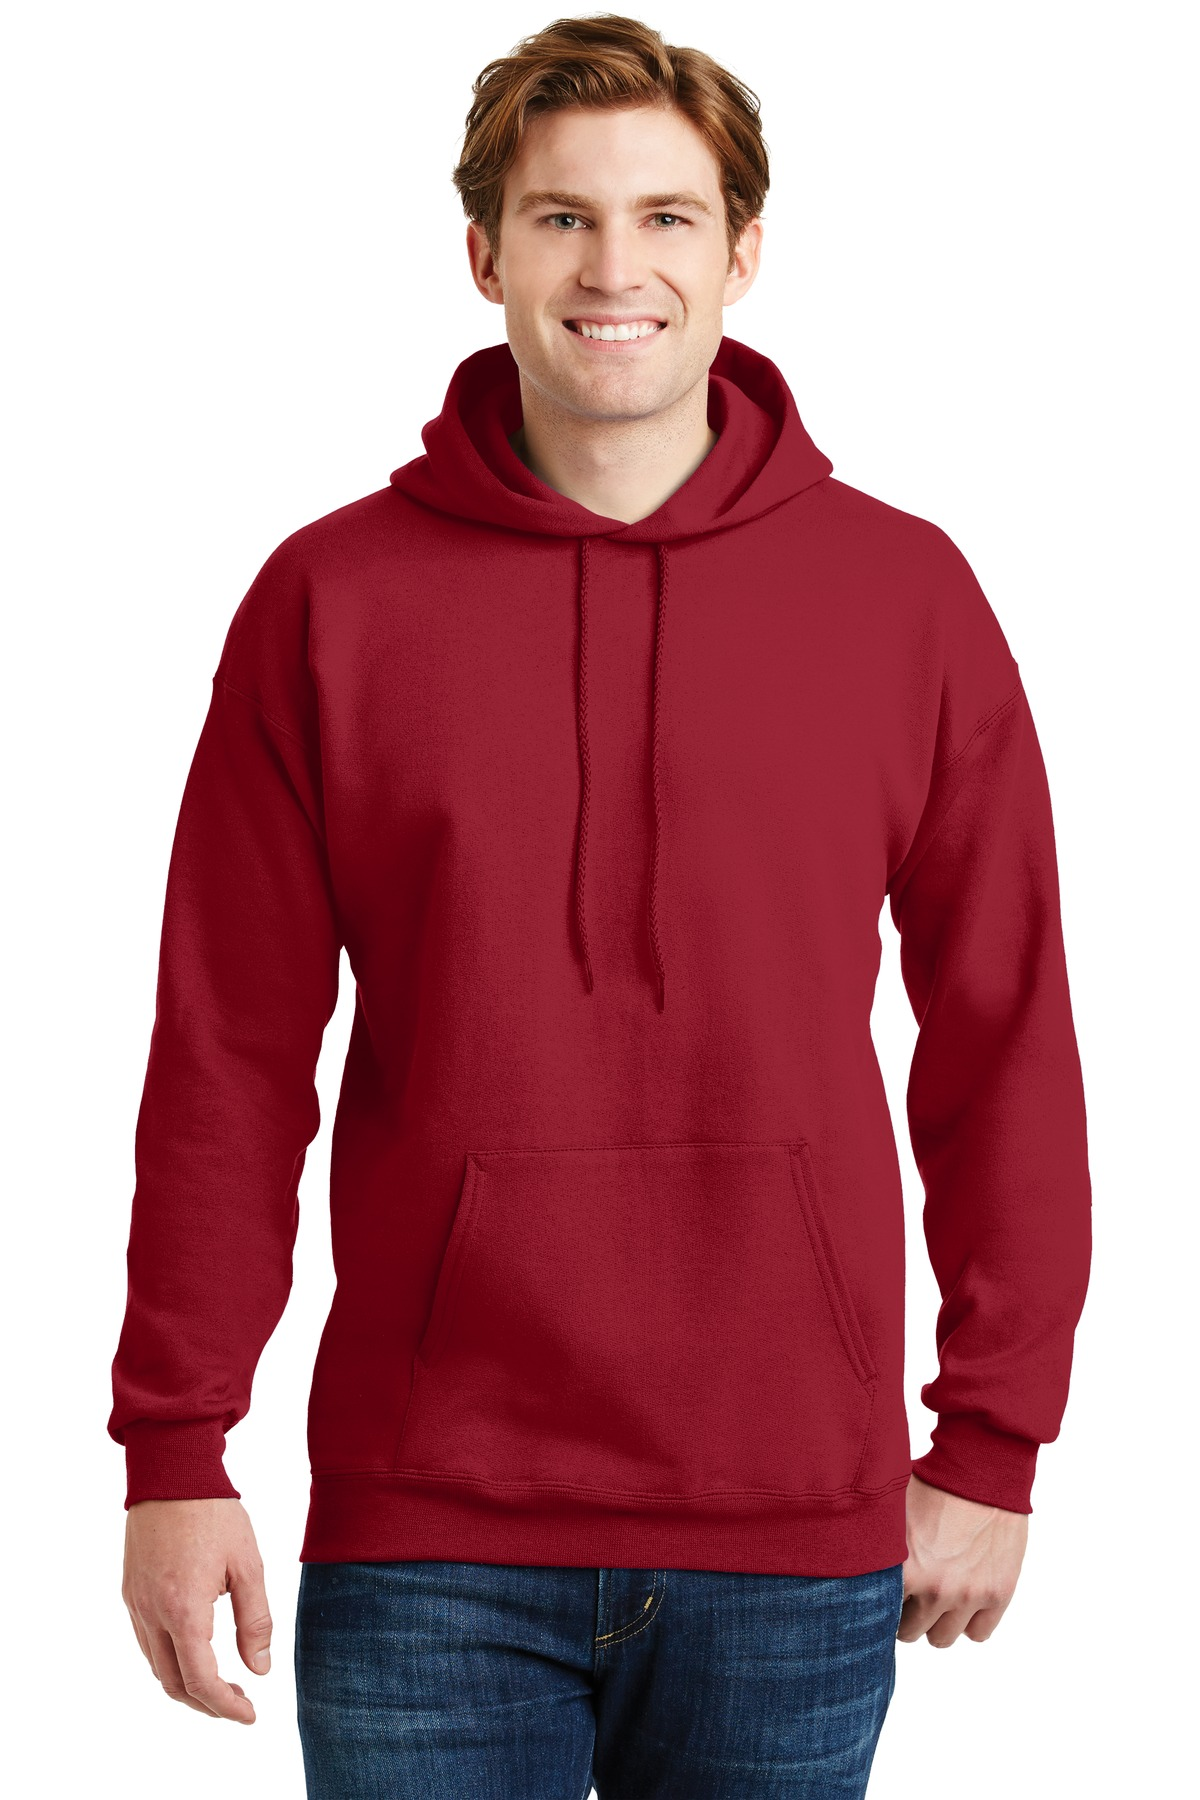 Hanes ®  Ultimate Cotton ®  - Pullover Hooded Sweatshirt.  F170 - Deep Red